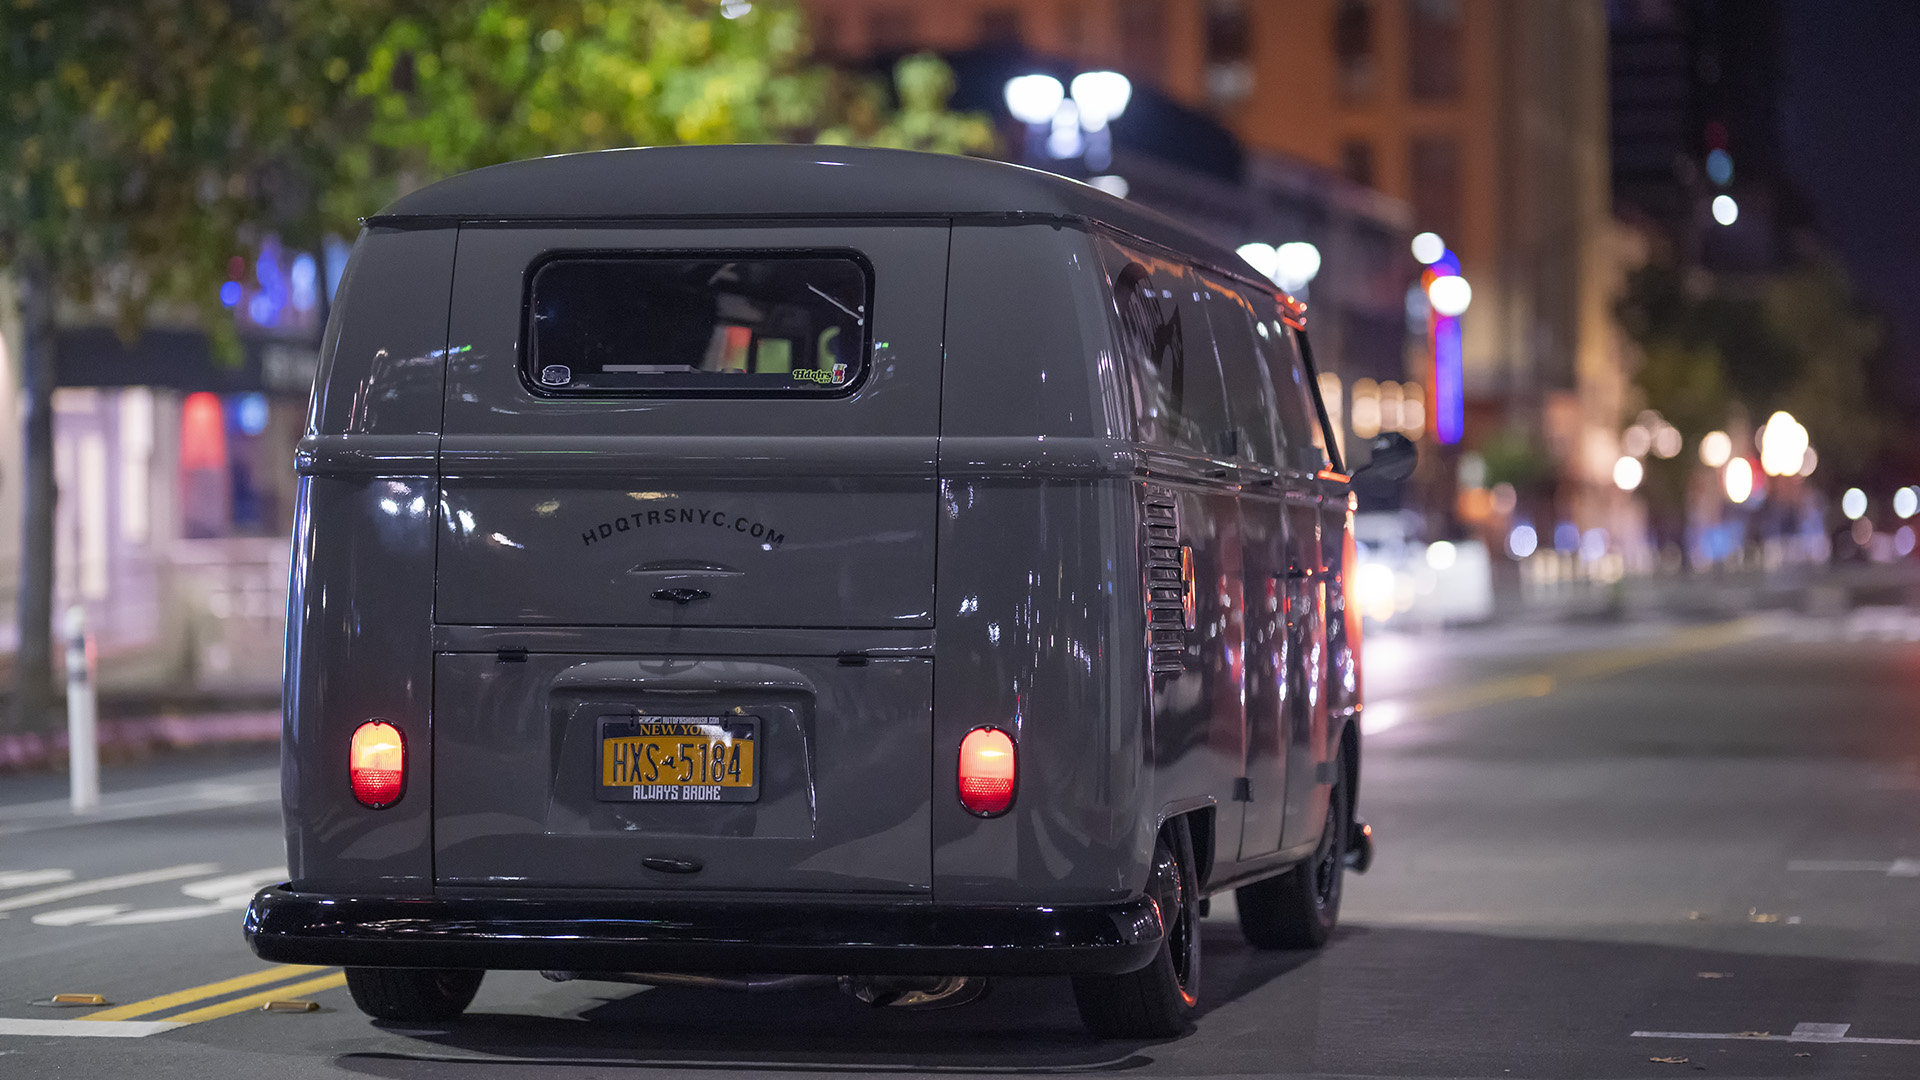 Started From The Bottom - HDQTRS NYC Volkswagen Bus